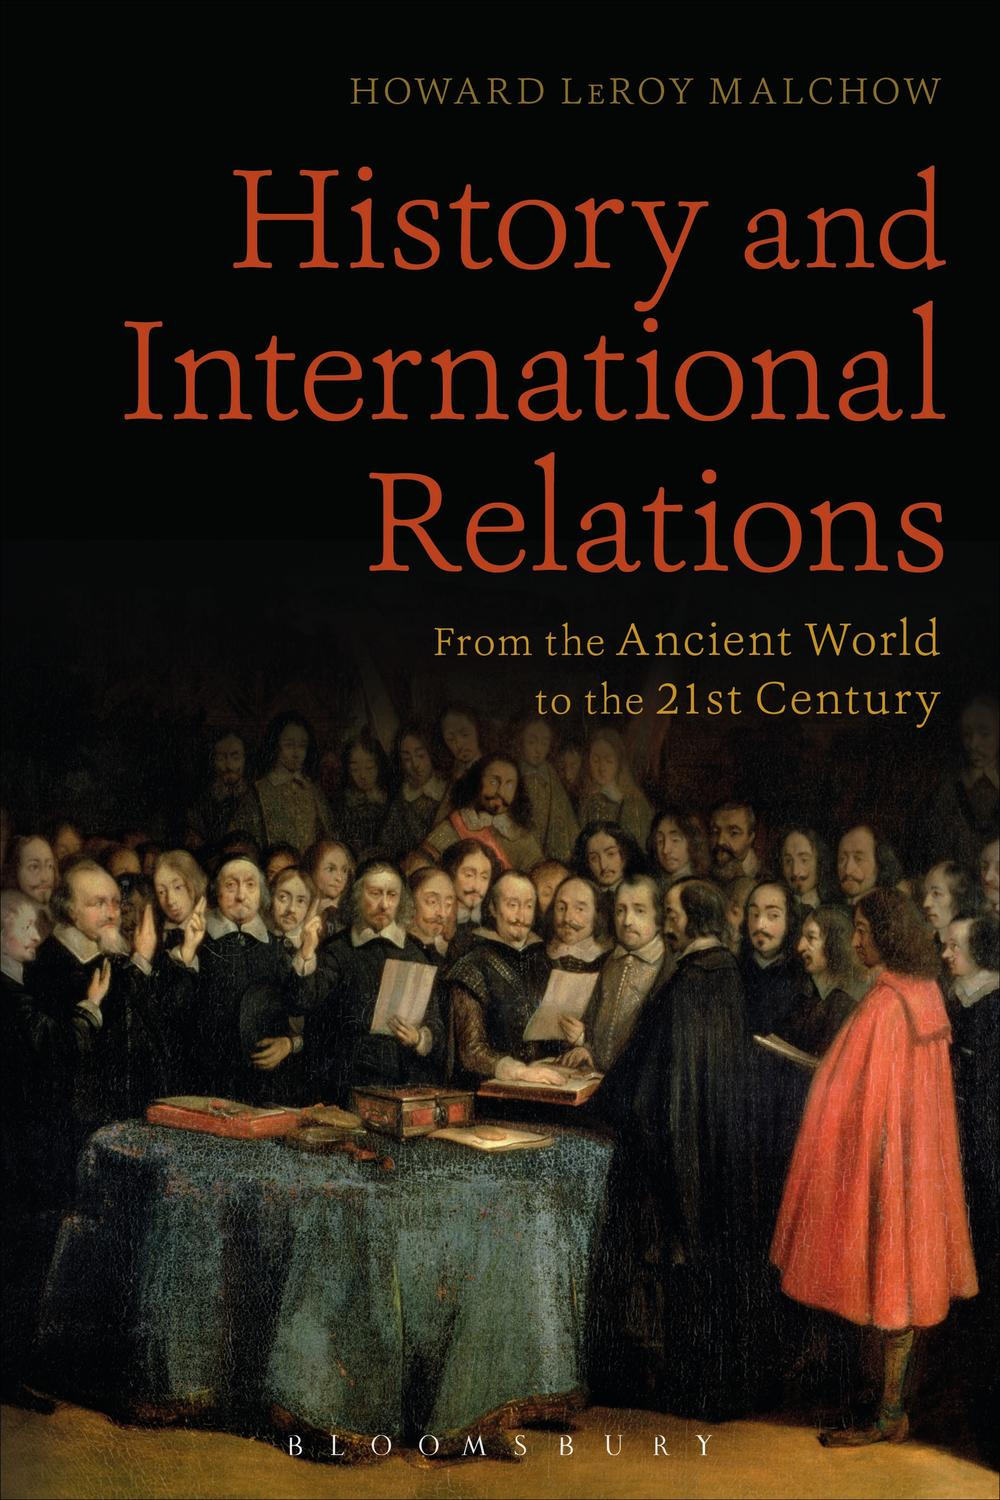 History and International Relations by Howard LeRoy Malchow